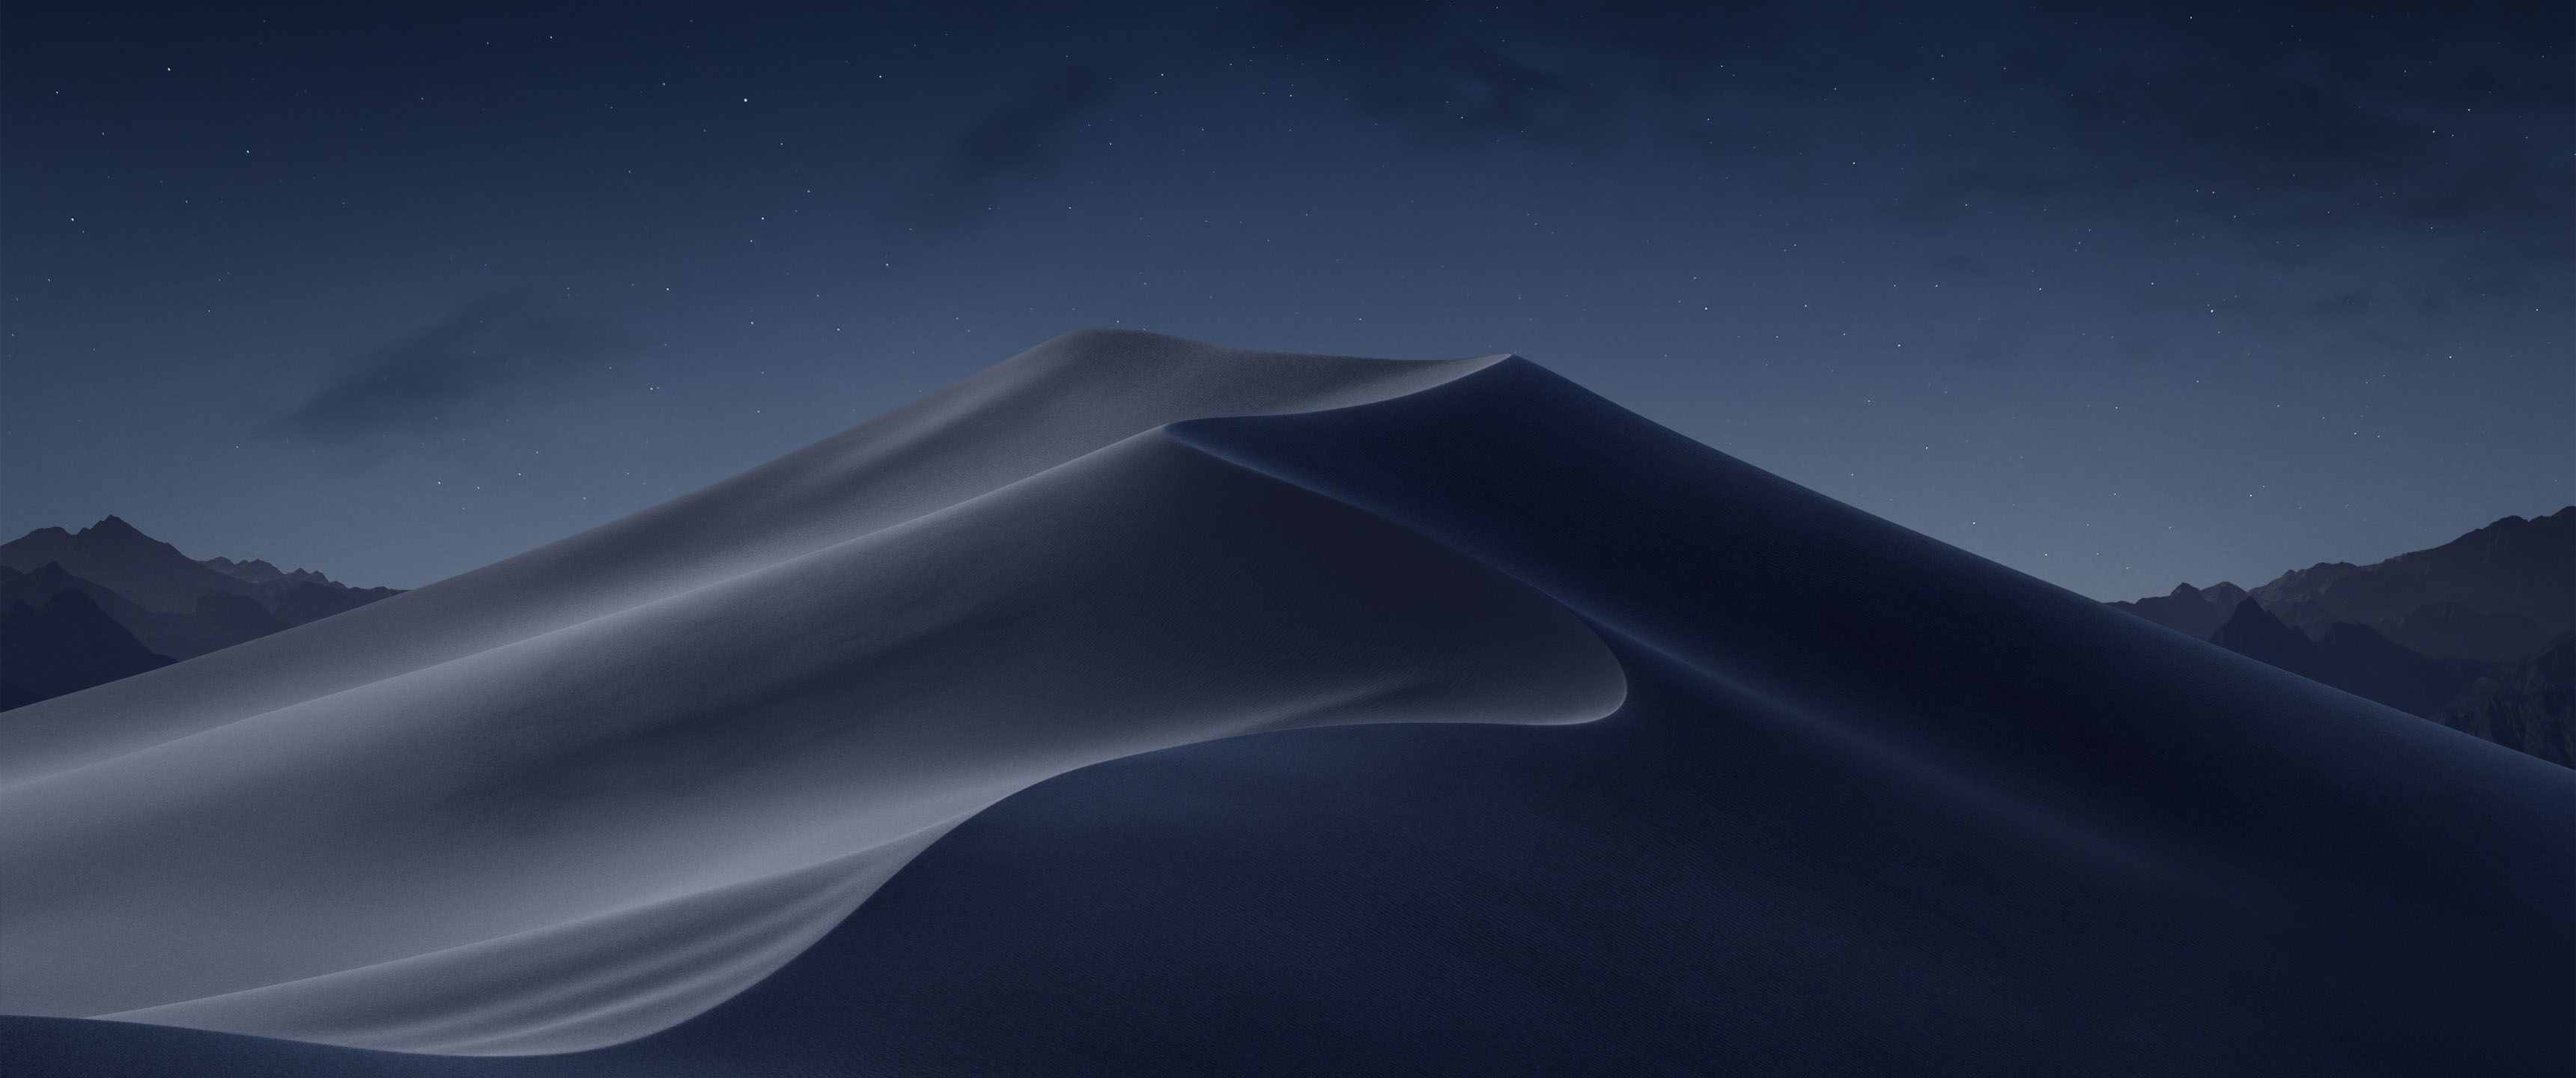 Mojave Night 21 9 Wallpaper Ultrawide Monitor 21 9 Wallpapers